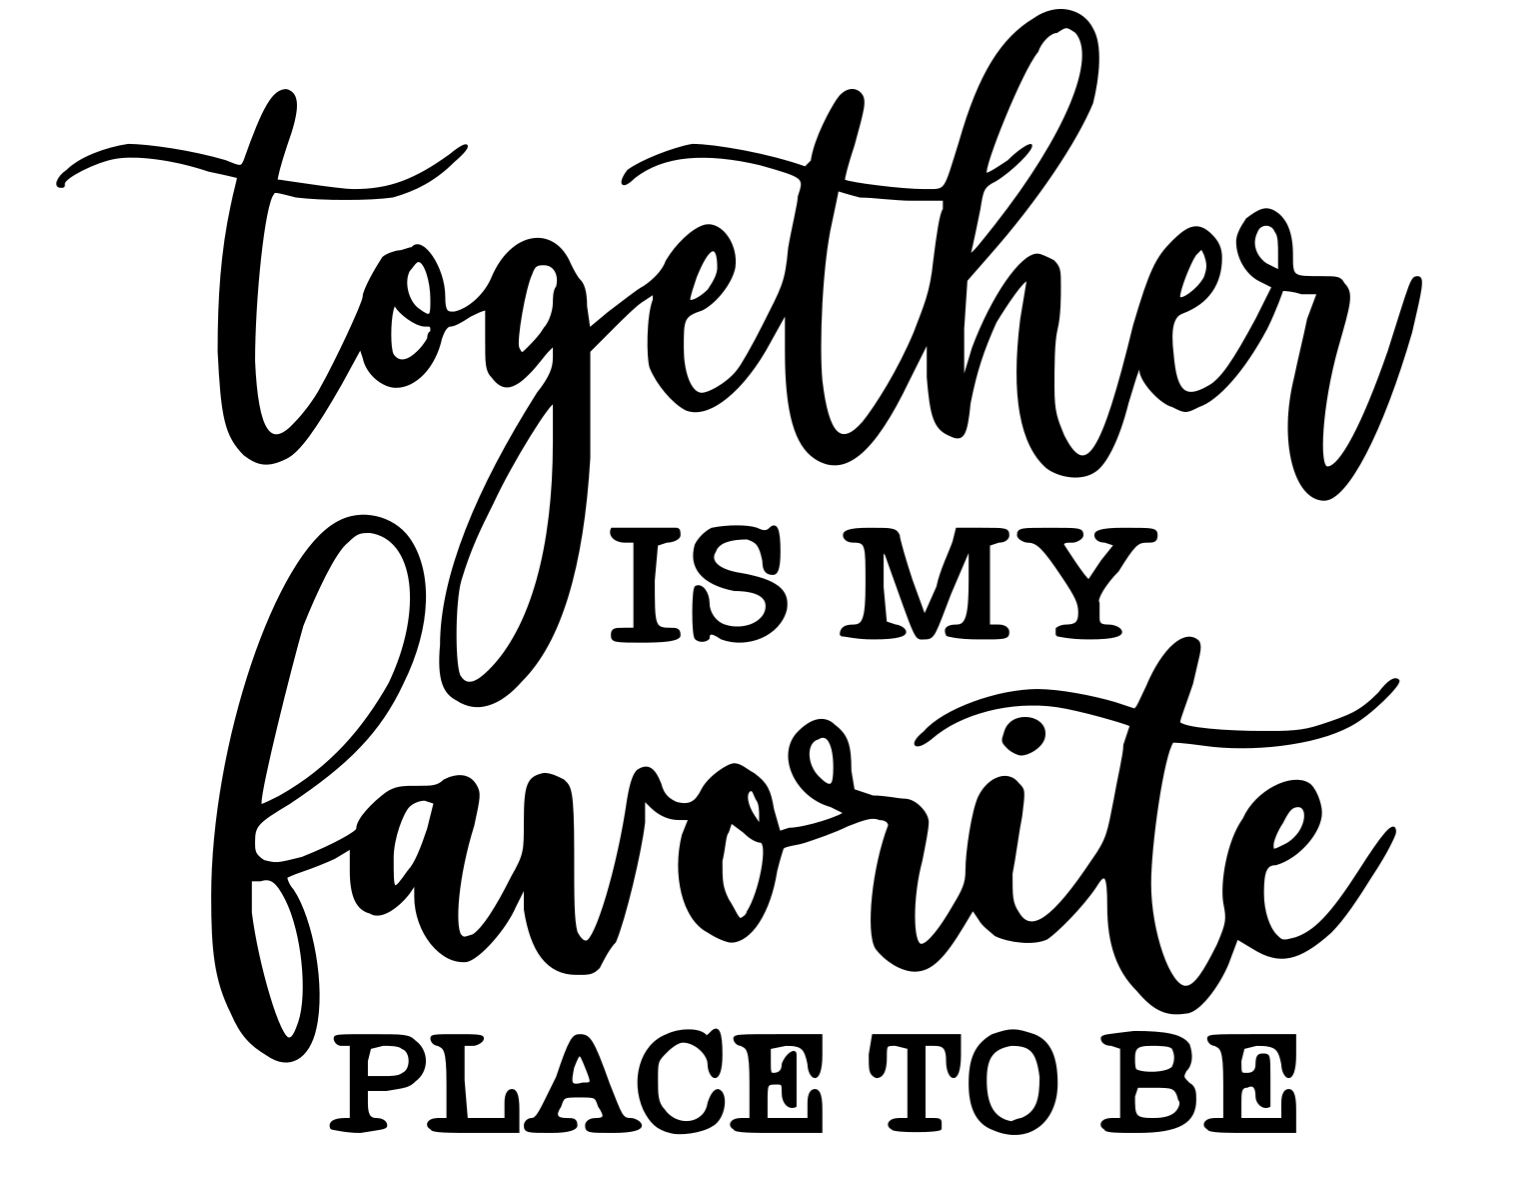 Together is my favorite place - Copy